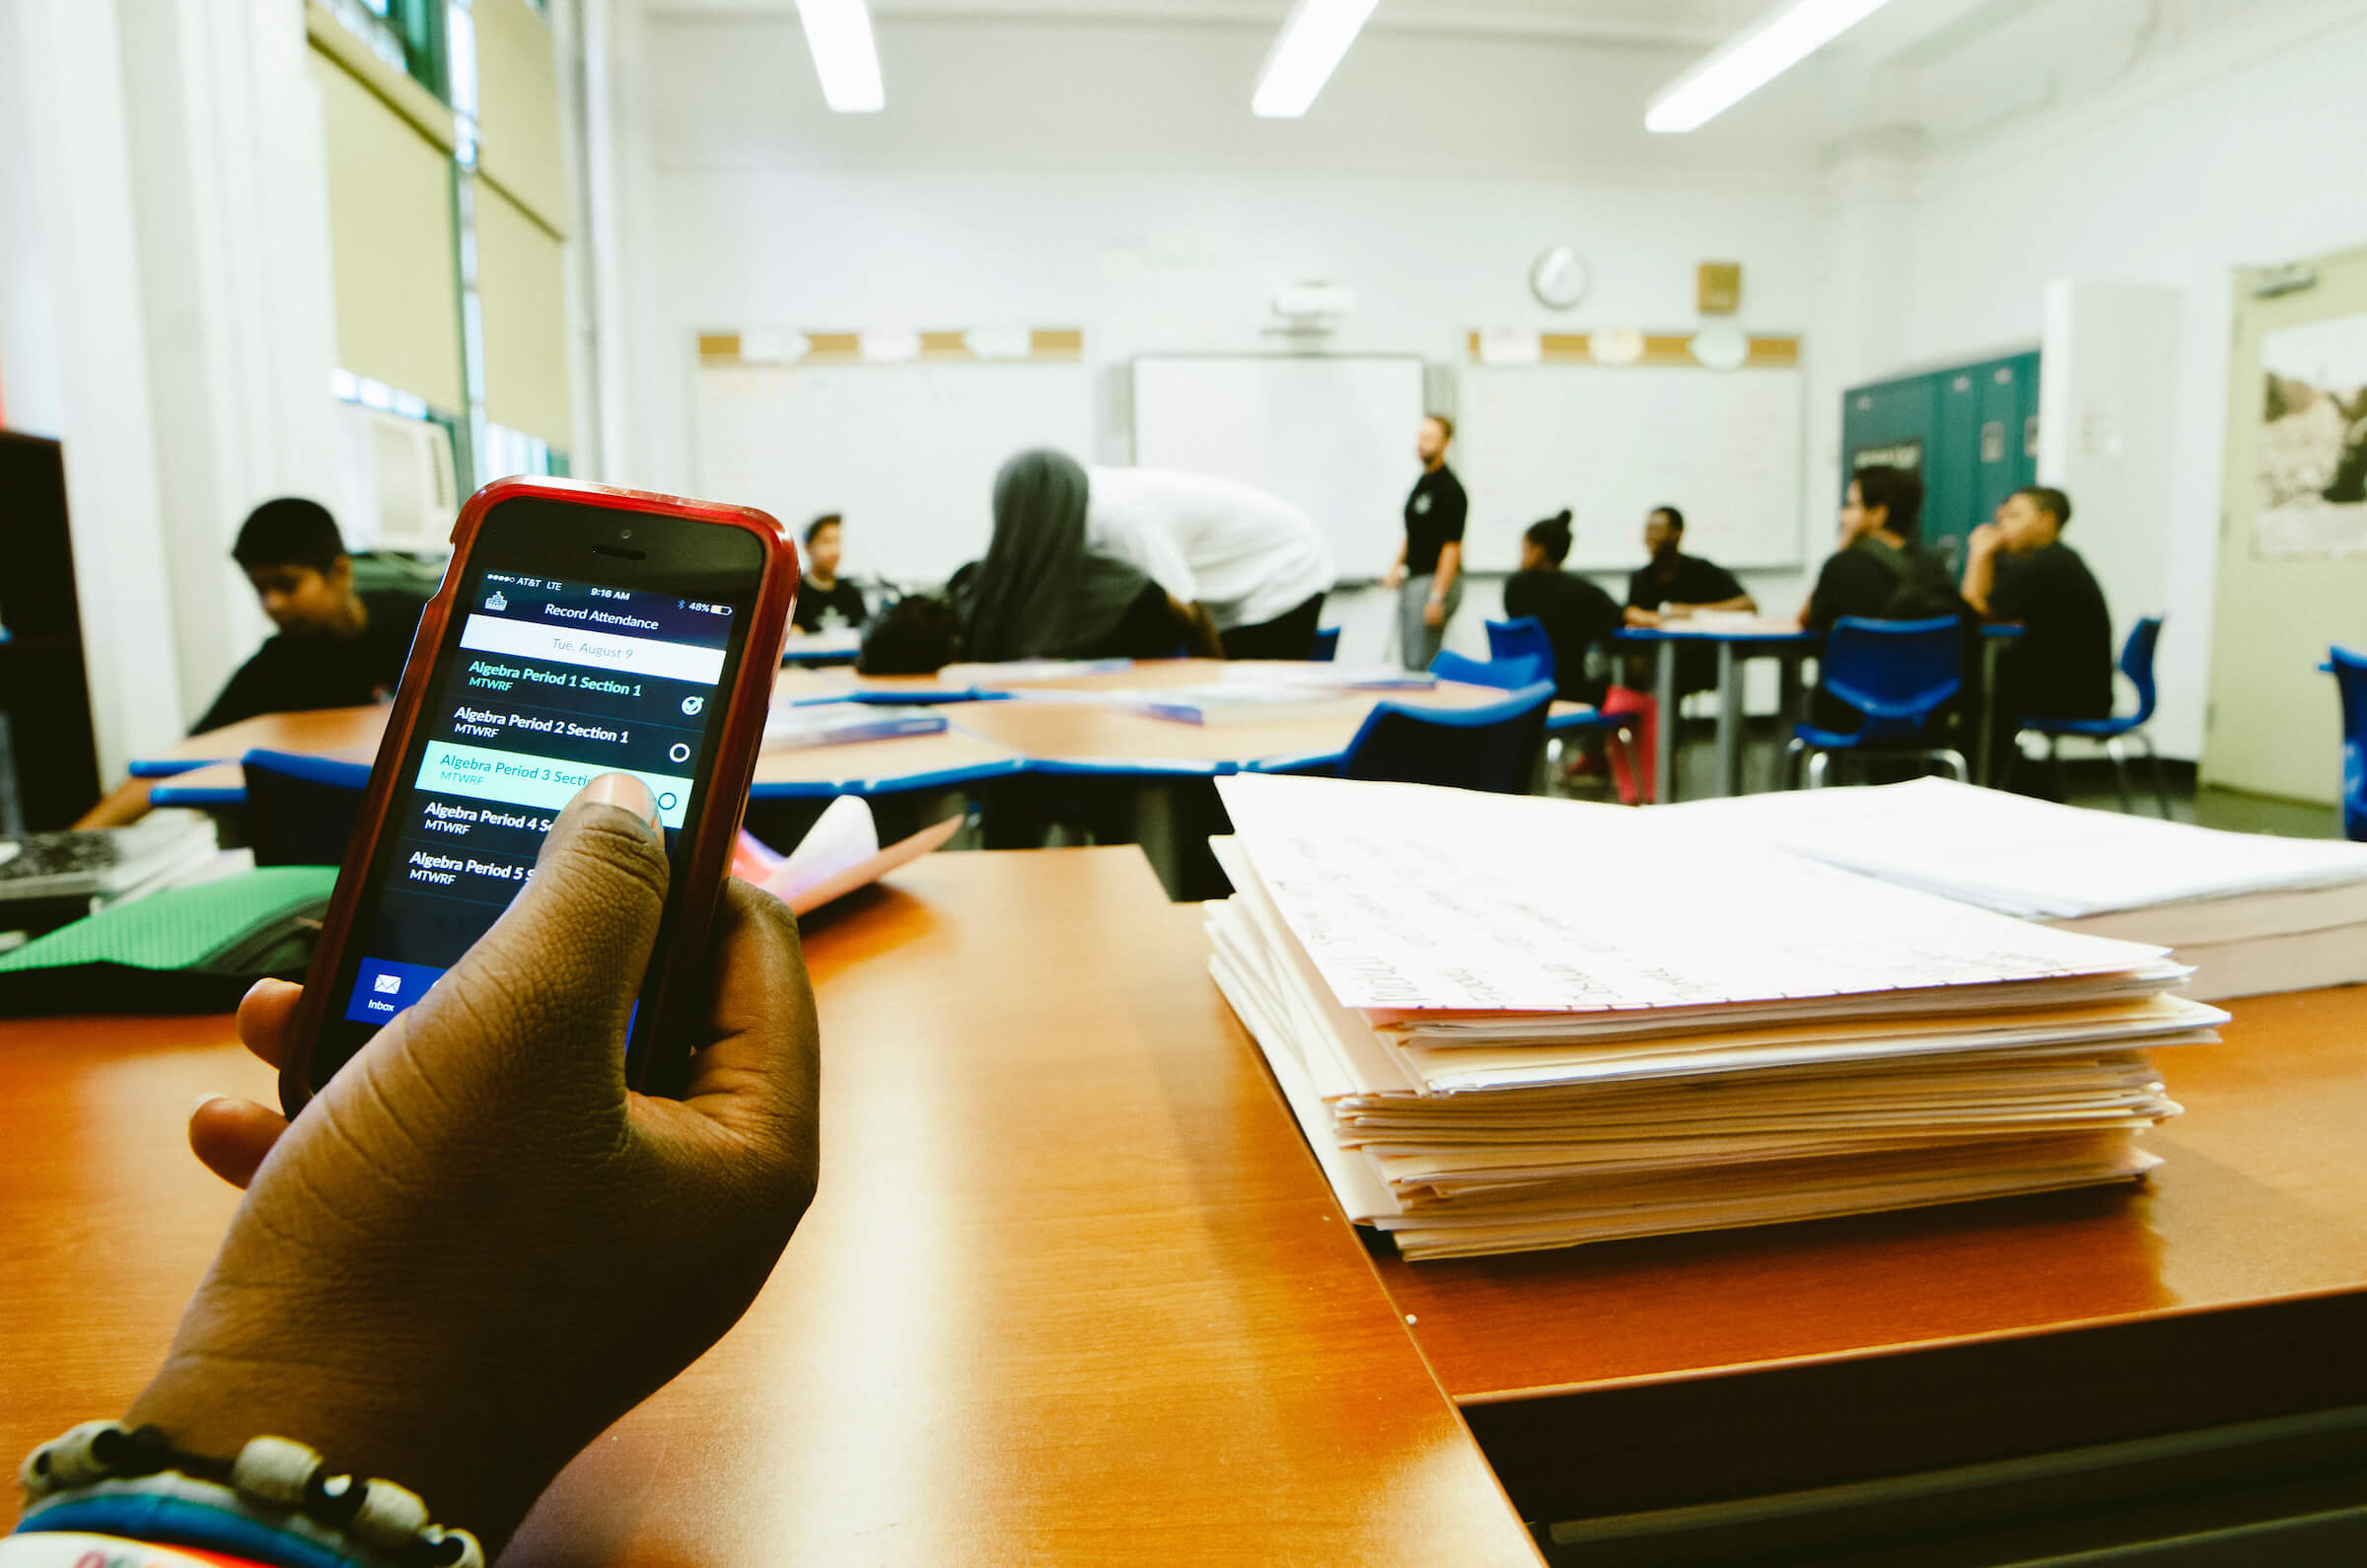 Engagement for educators on the go